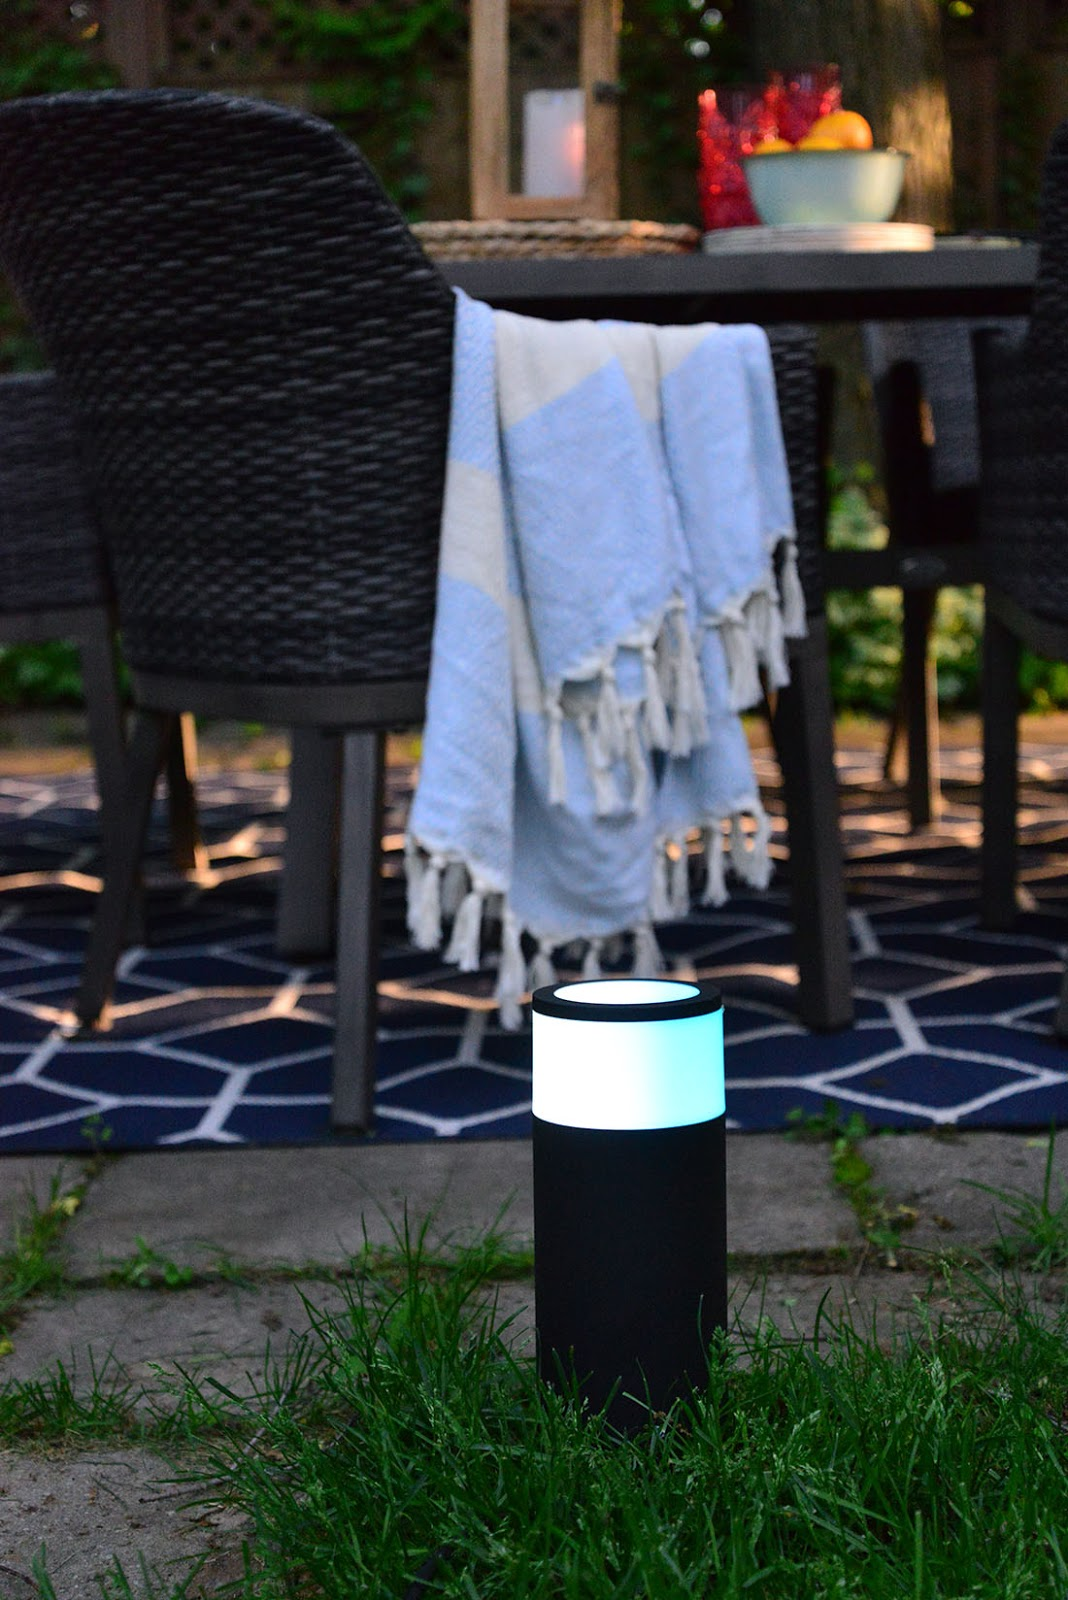 philips hue calla bollard, outdoor rug, outdoor entertaining, summer party tips